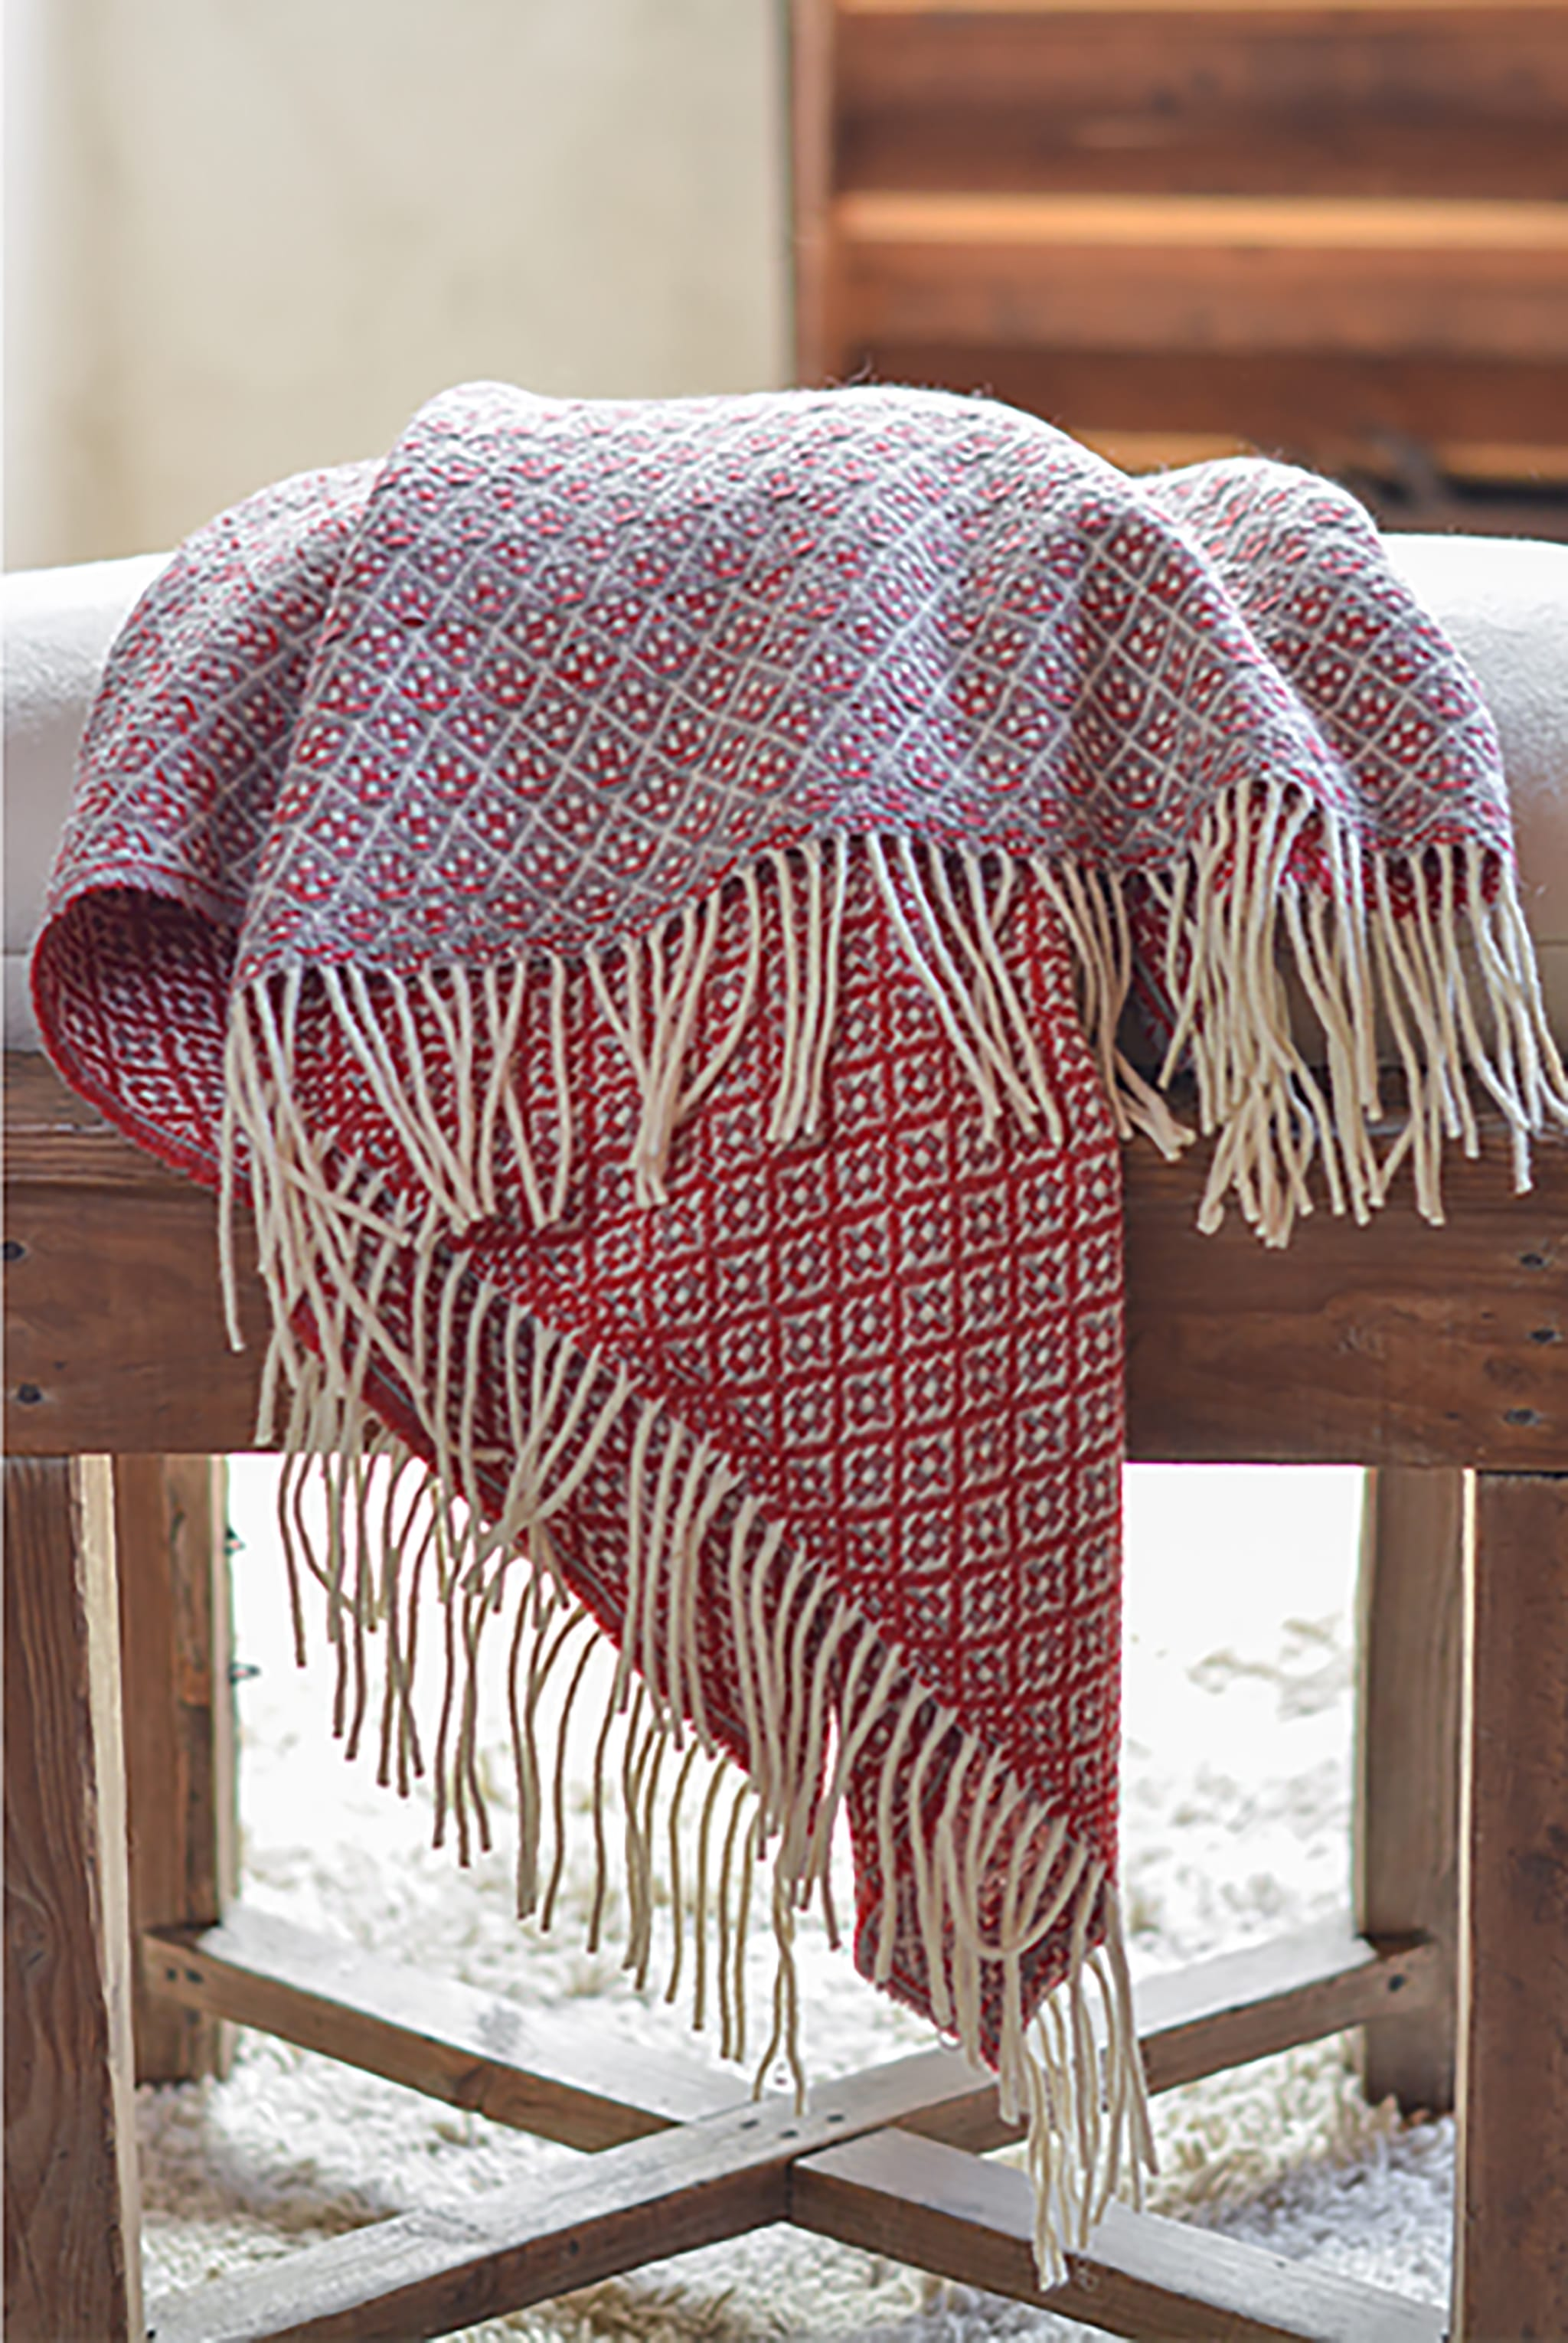 Red and gray Merino throw with flower weave pattern folded over a side table